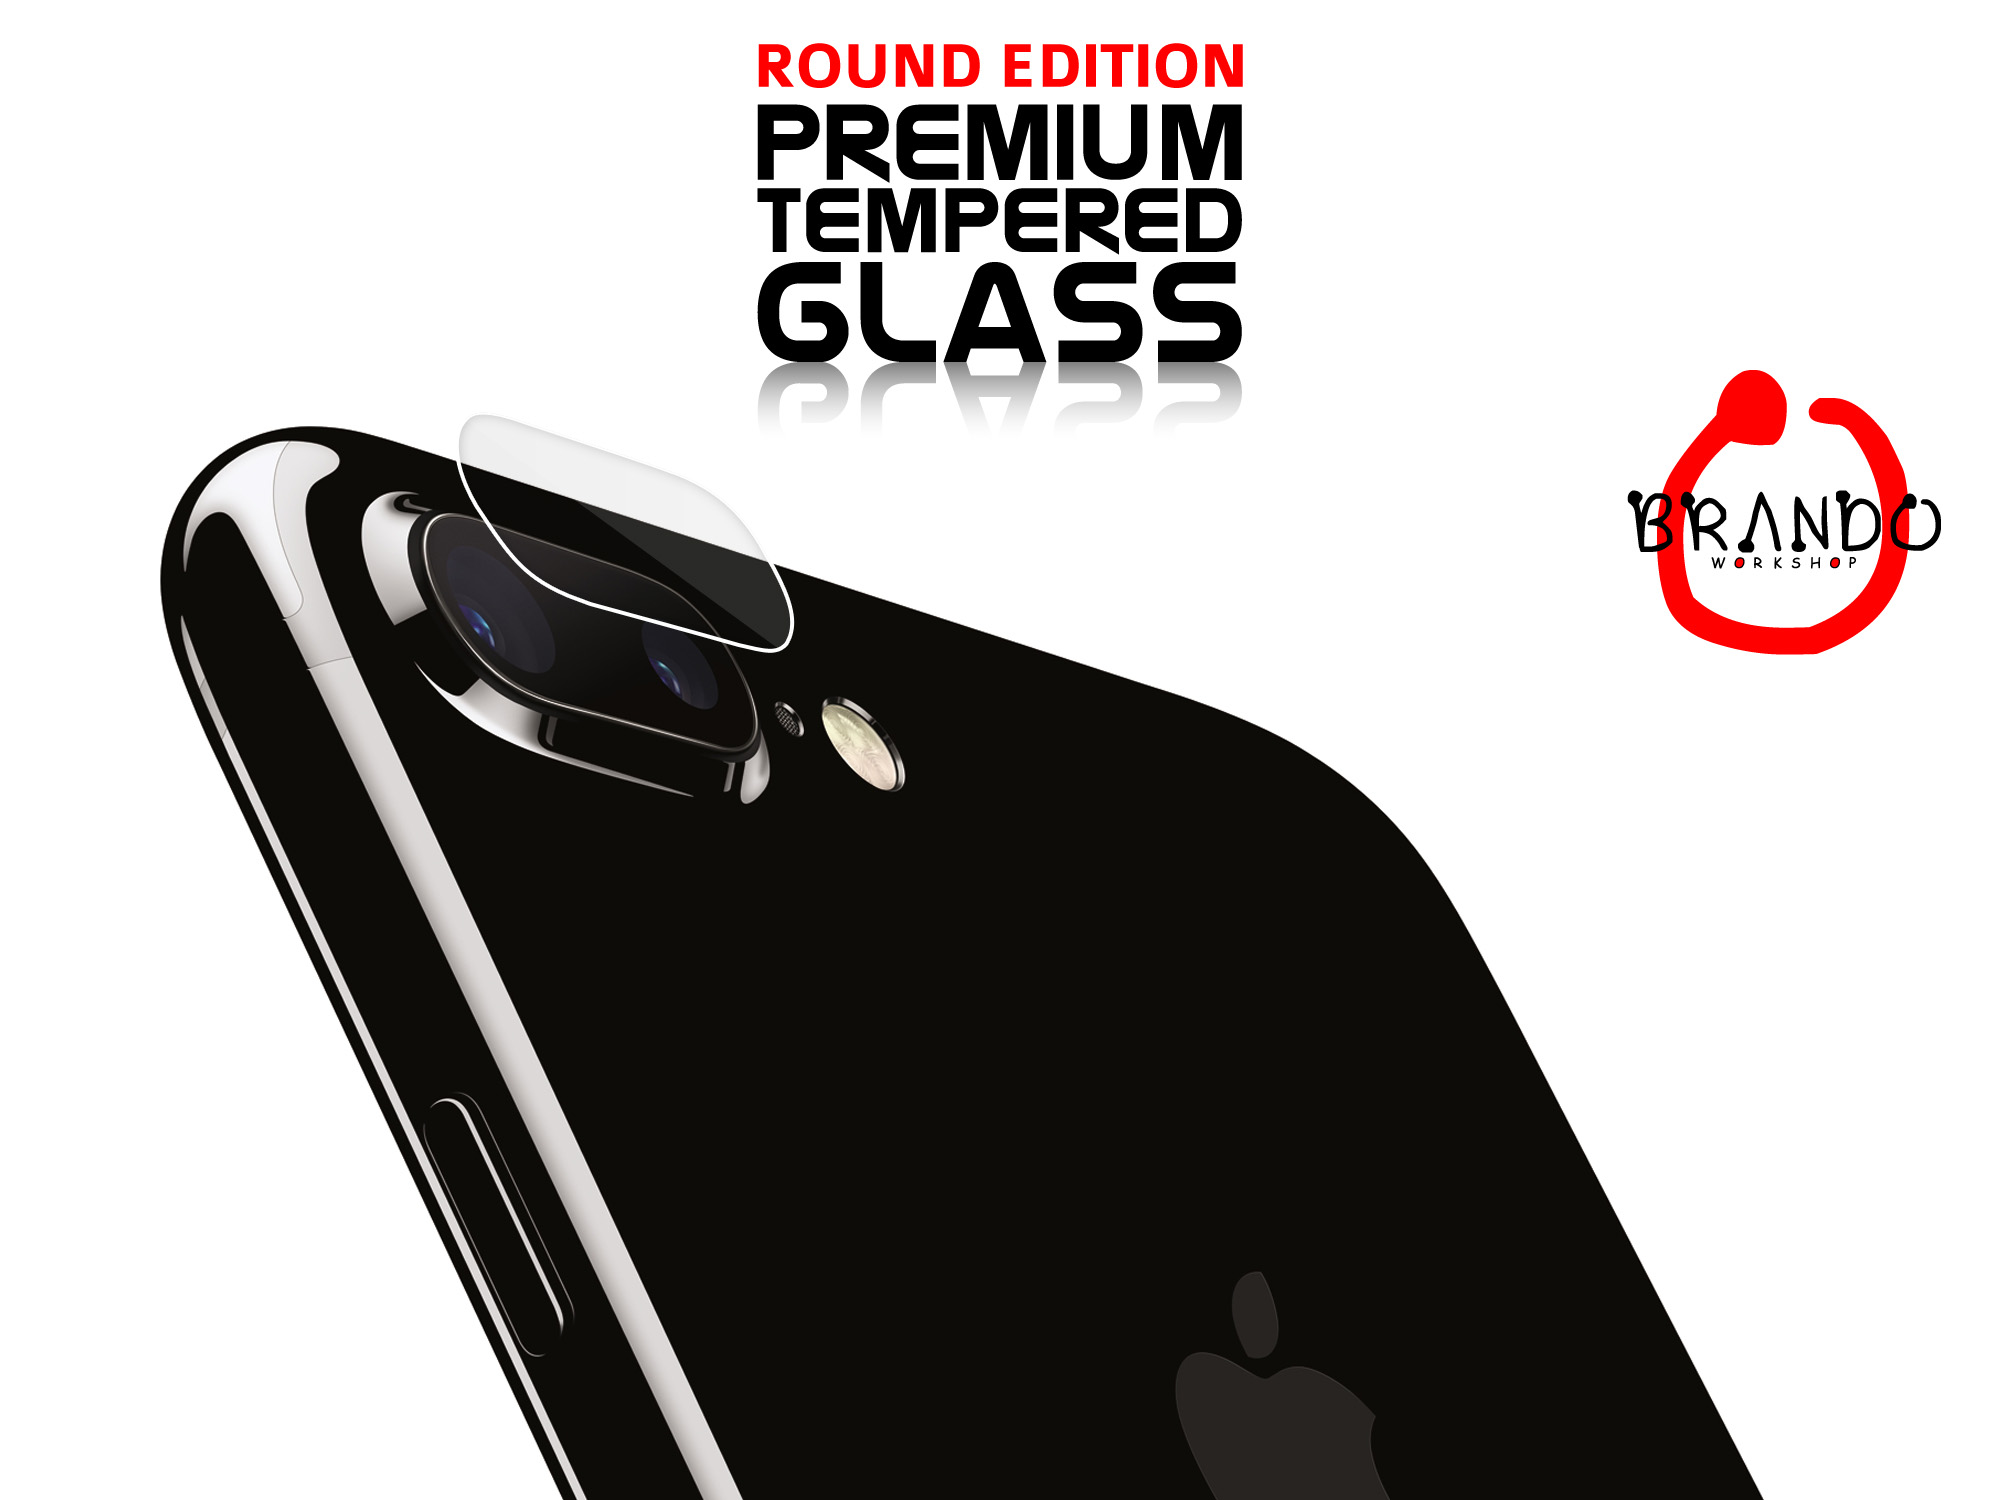 Brando Workshop Premium Tempered Glass Protector (Rounded Edition) (iPhone 8 Plus Rear Camera)